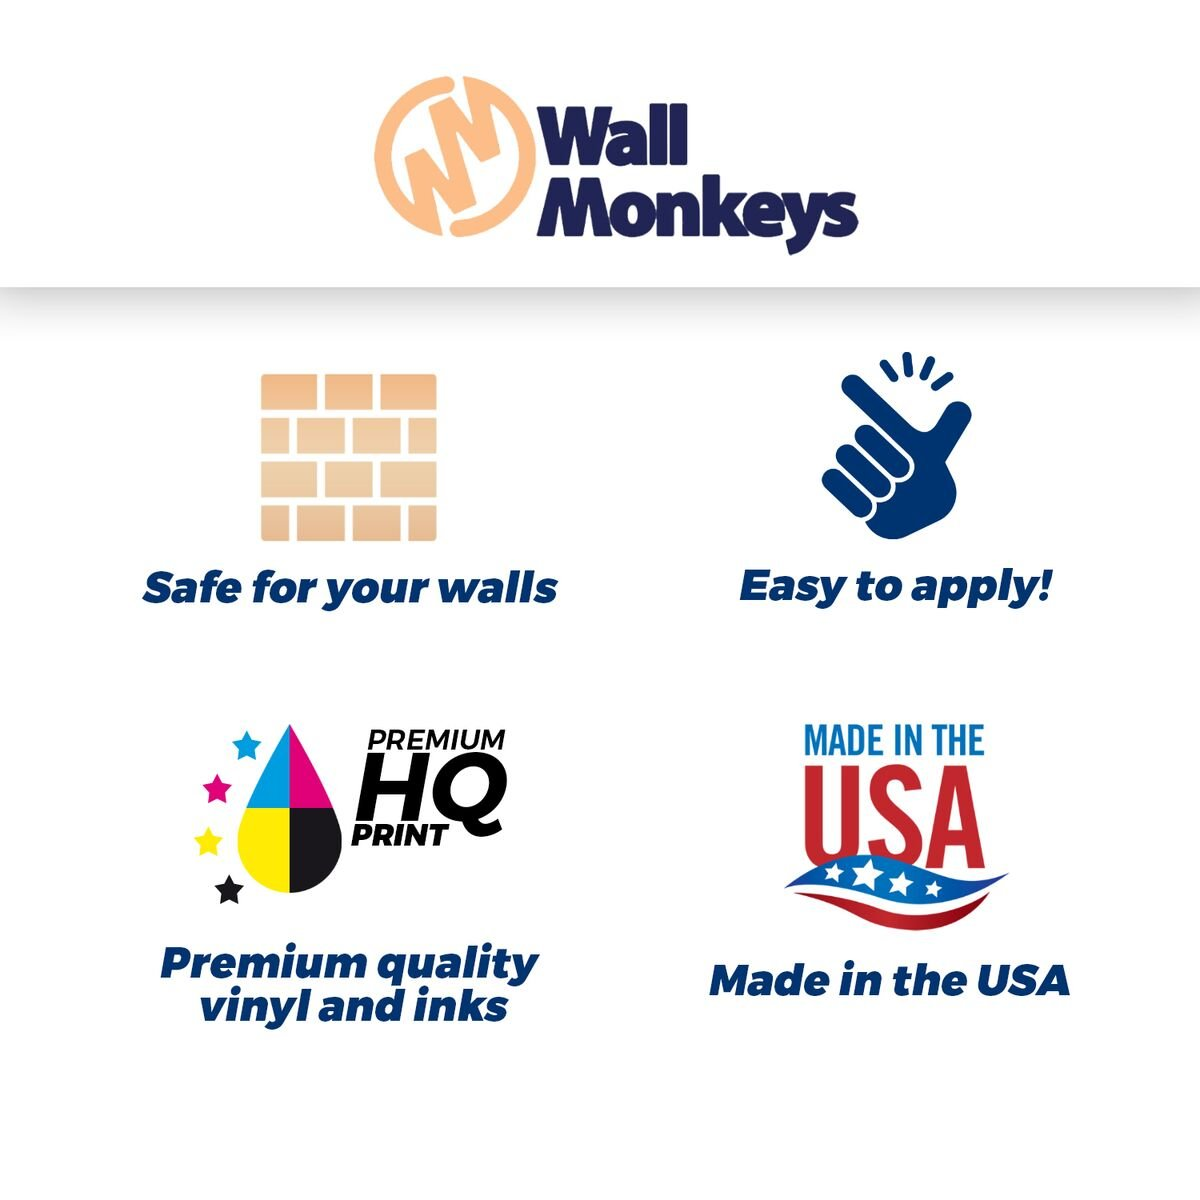 Wallmonkeys Steampunk Vintage Hot Air Wall Decal Peel and Stick Graphic (24 in H x 24 in W) WM106331 by Wallmonkeys (Image #4)